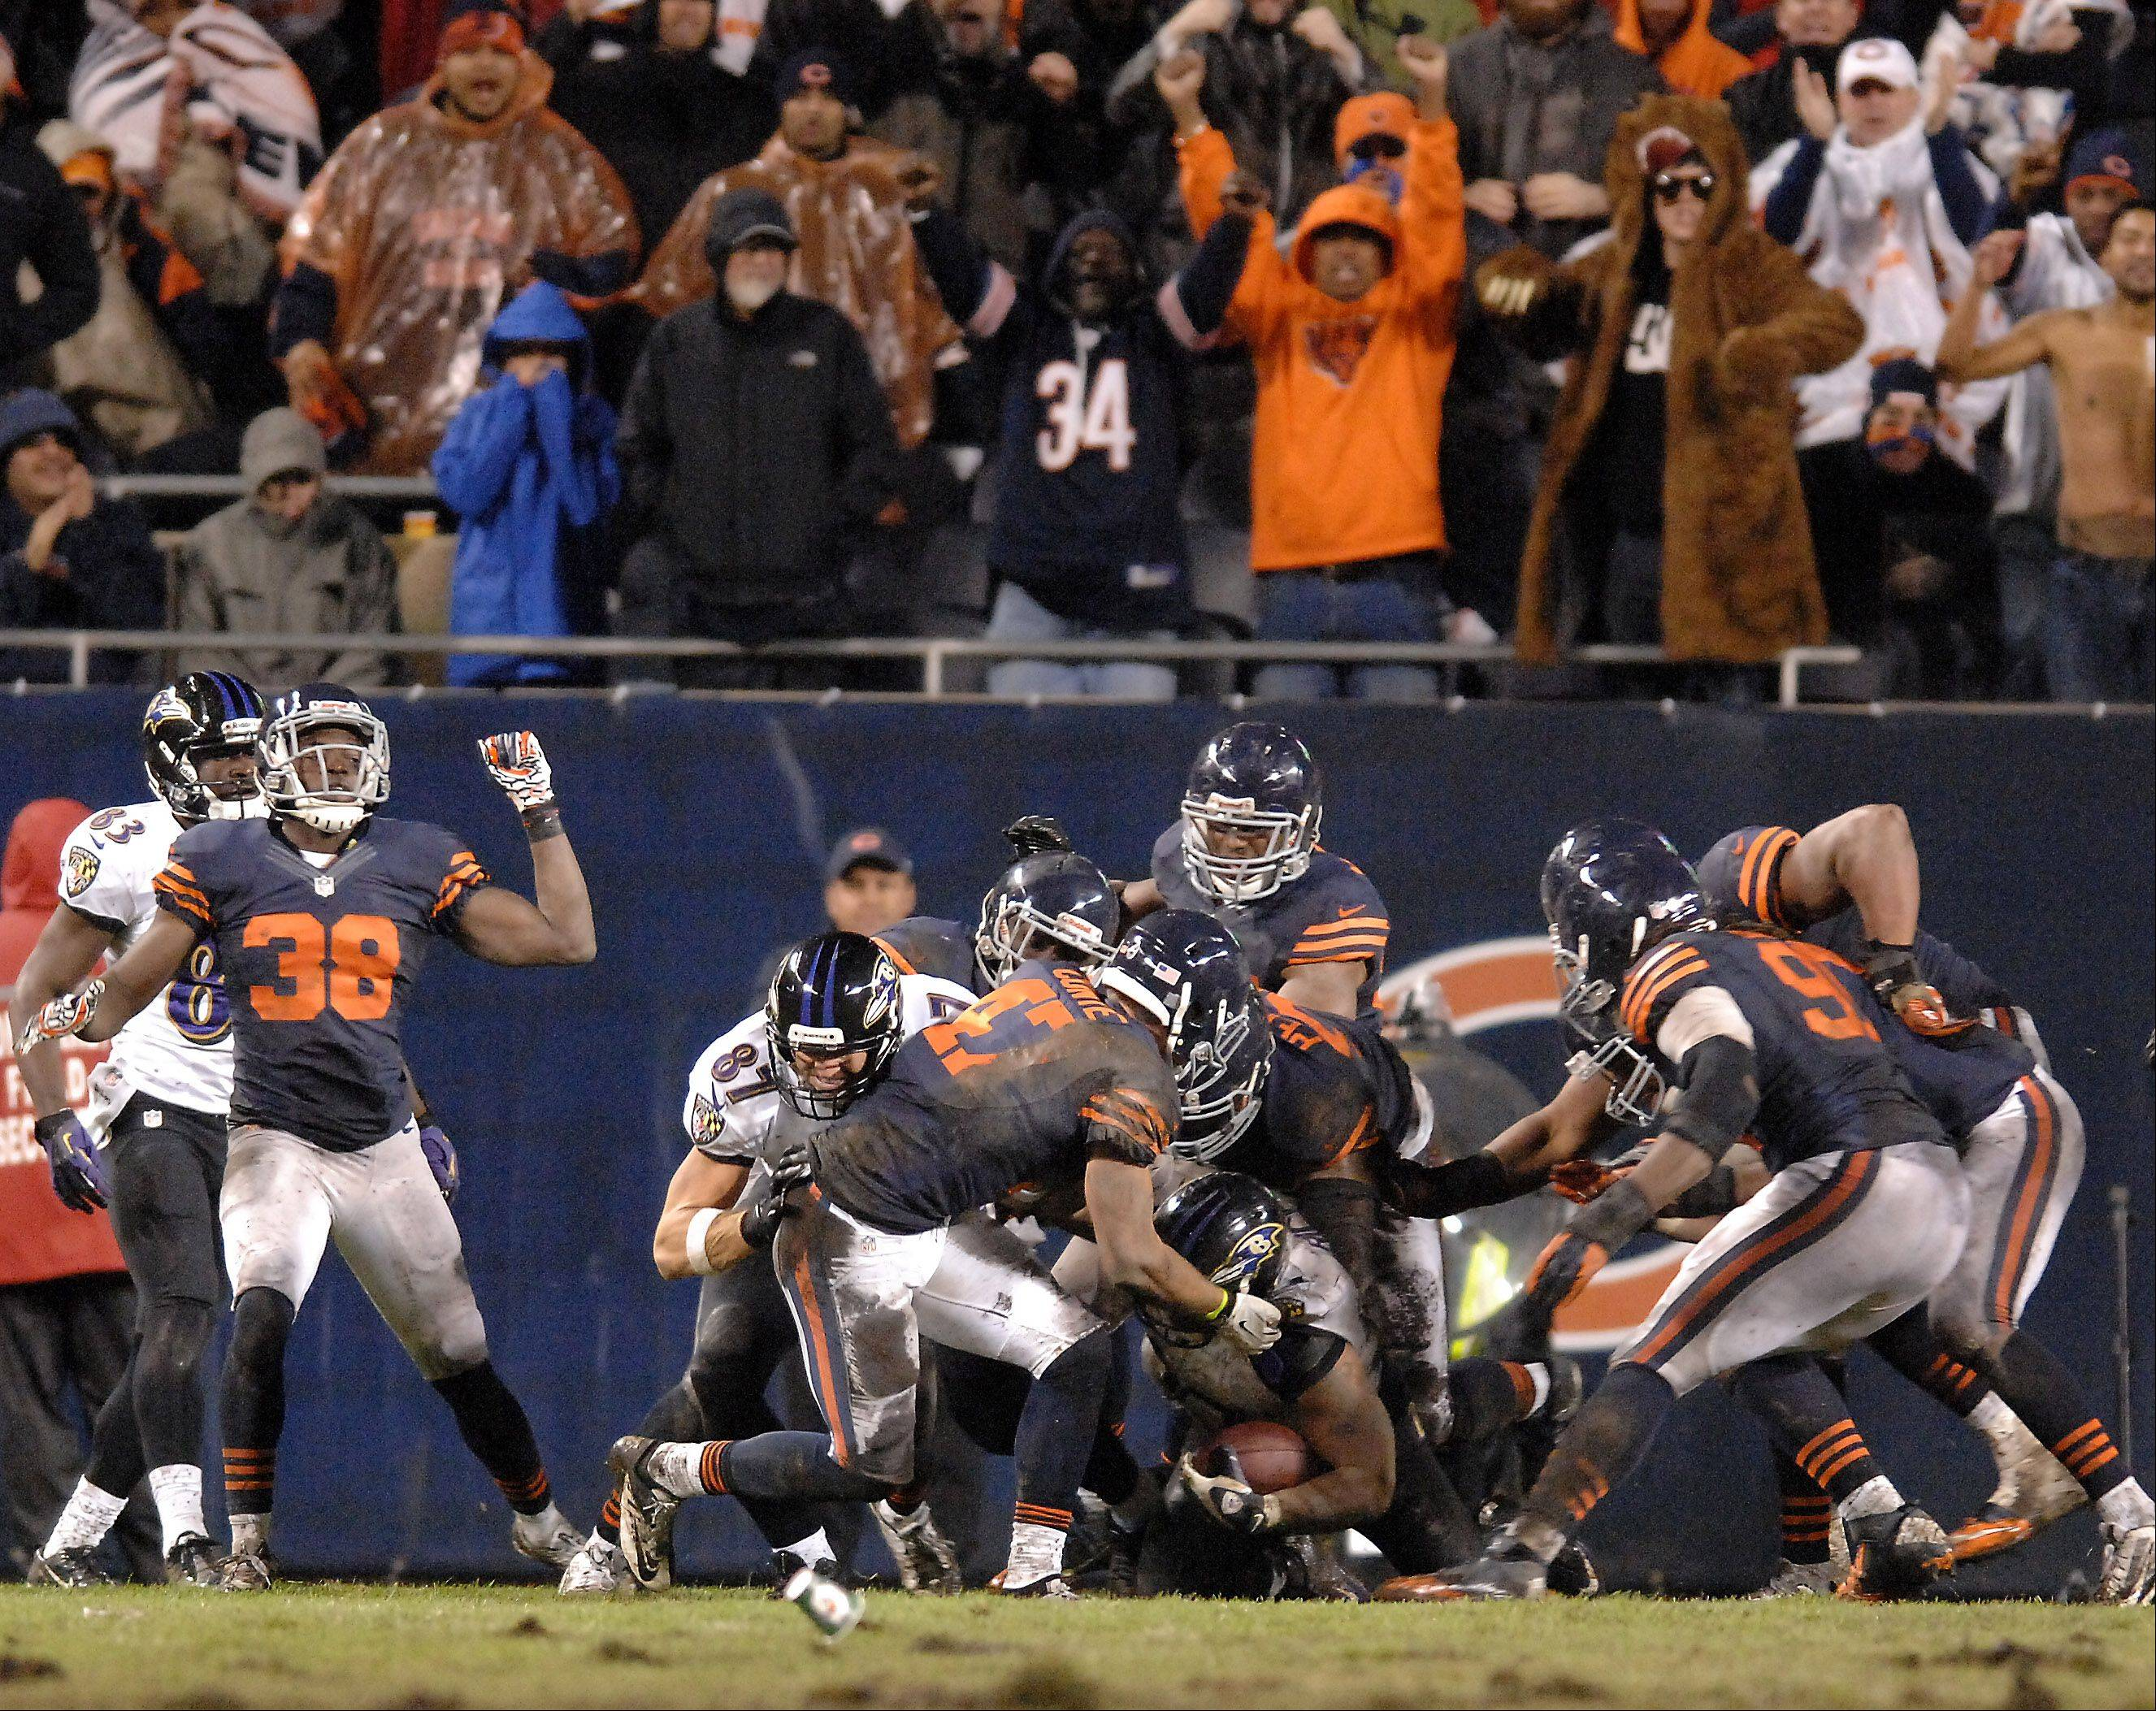 The Bears' defense stops running back Ray Rice near the goal line as they hold the Ravens to a field goal at the end of regulation Sunday.